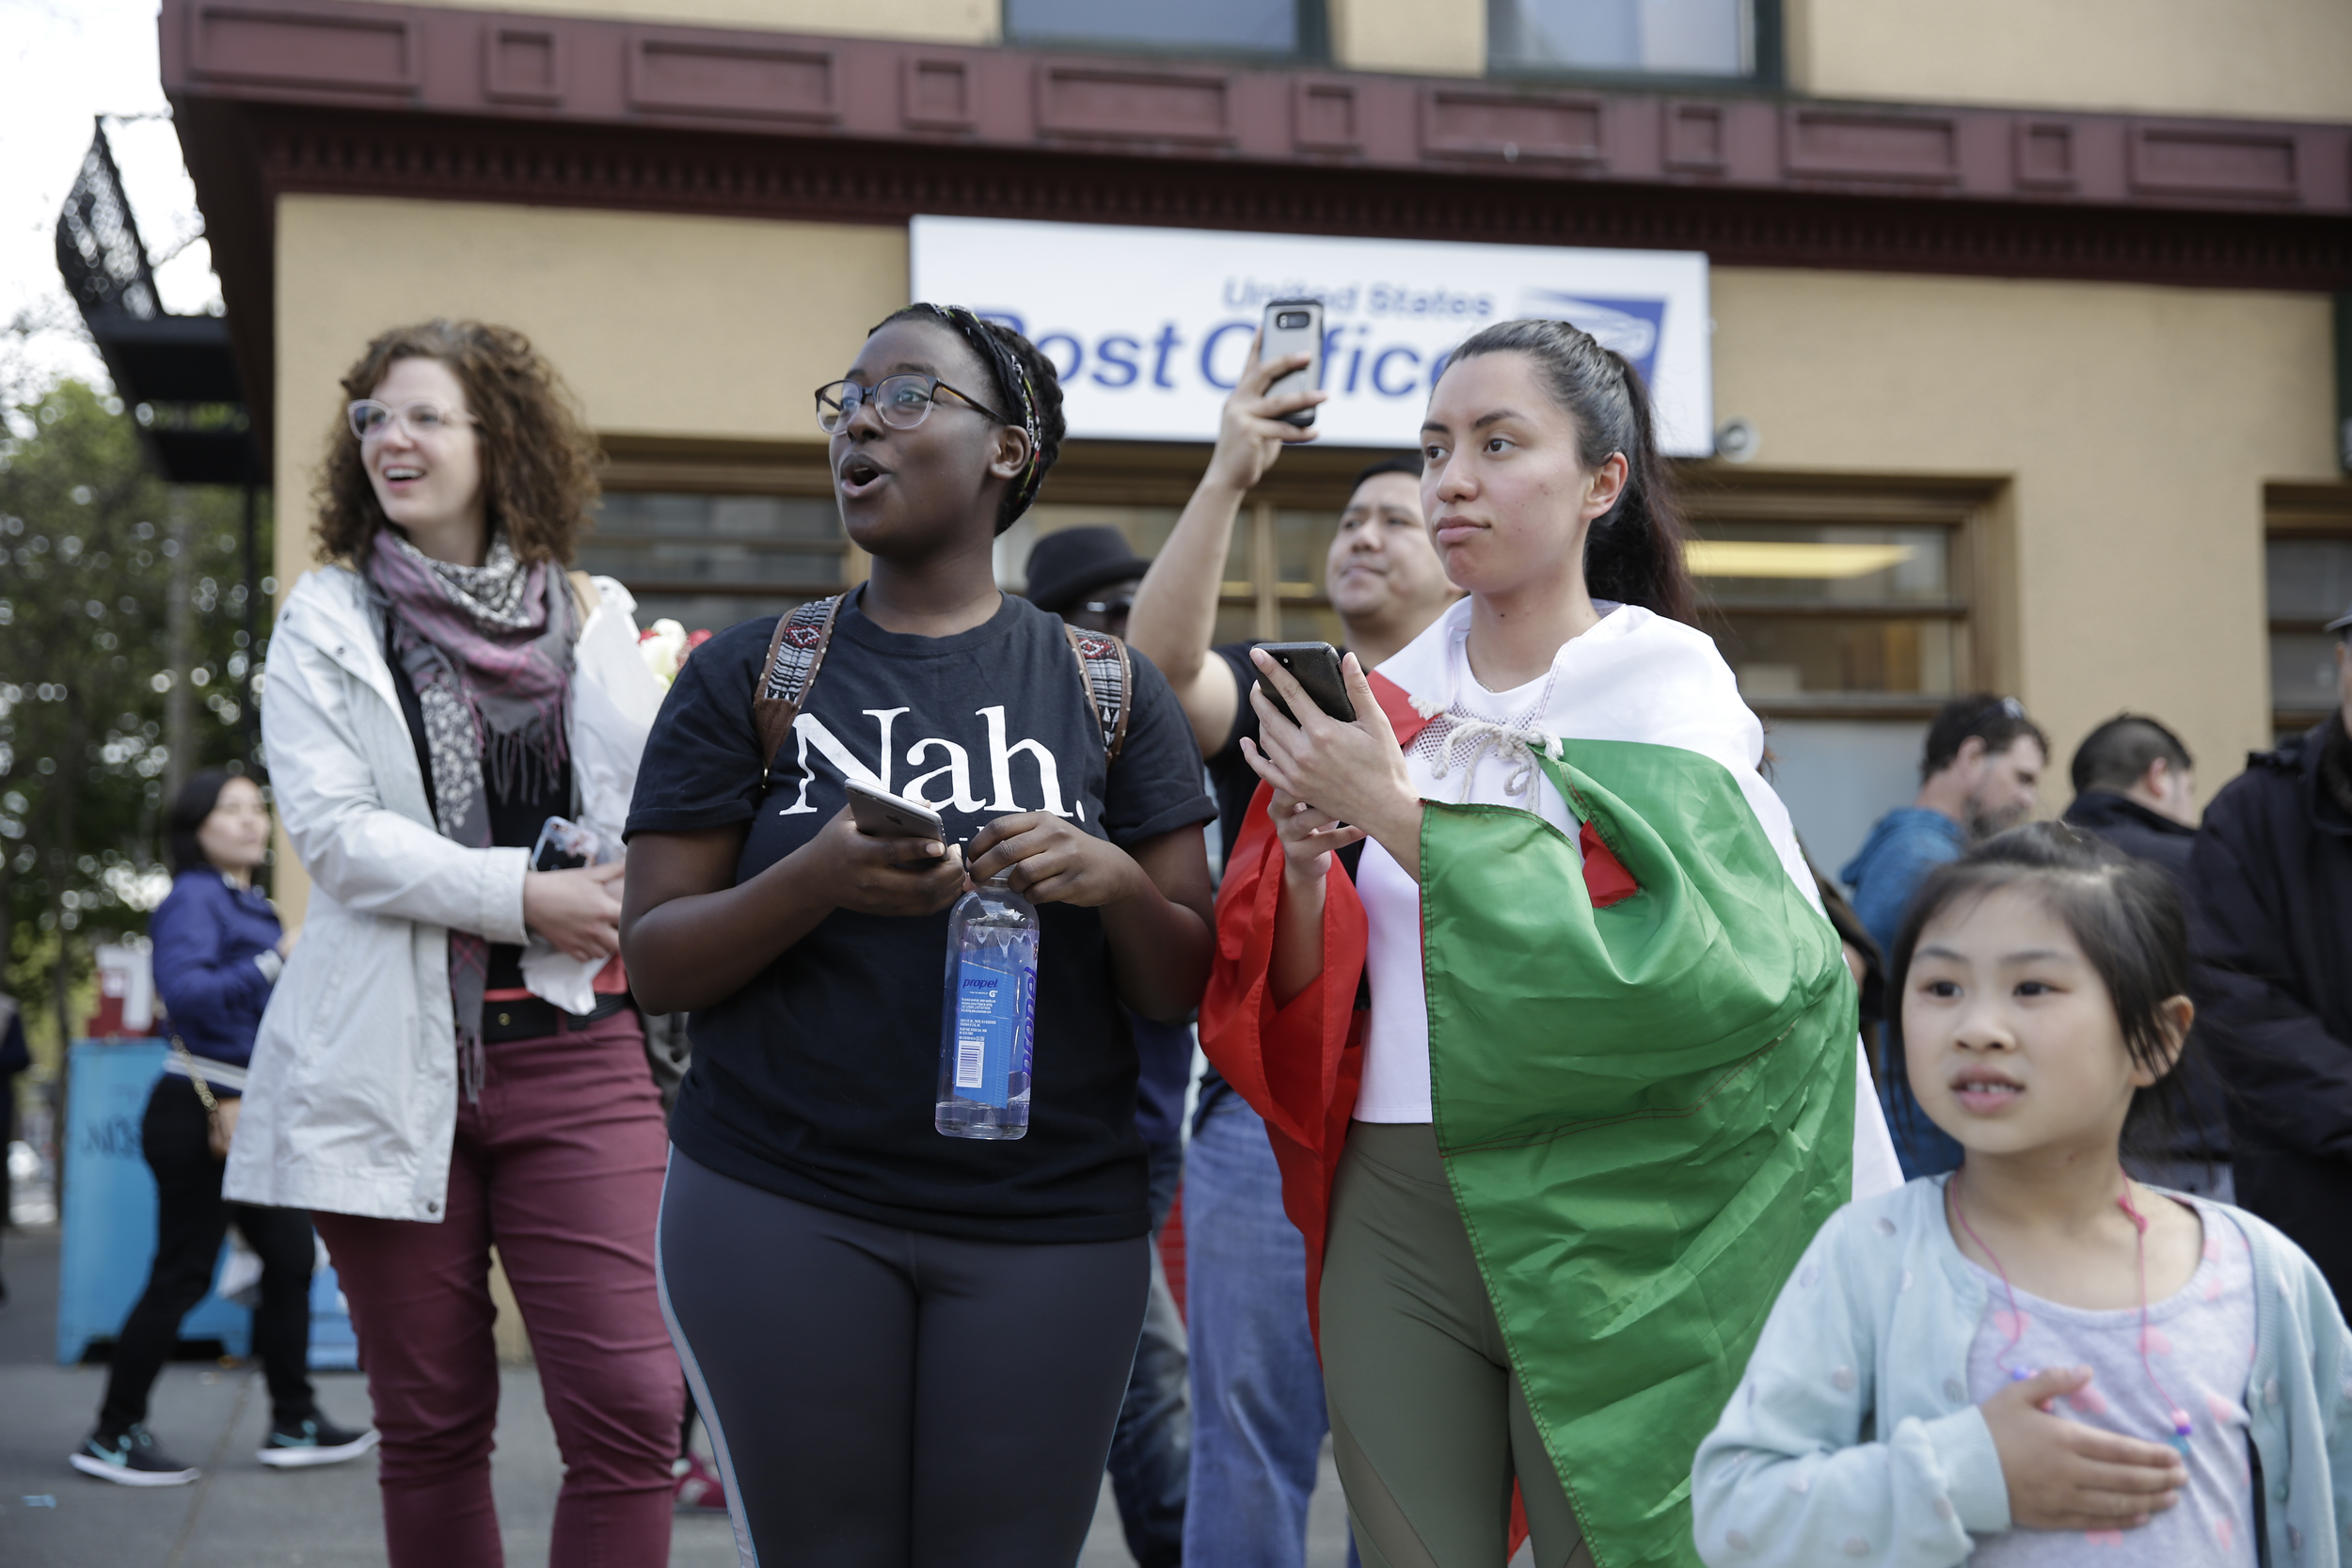 Zaria Smiley (L), 21, and Darlene Hadley, 21, both of Seattle, stop to watch before joining in the march in the International District at the annual May Day March for Workers and Immigrant Rights in Seattle, May 1, 2018. (Jason Redmond for Crosscut)